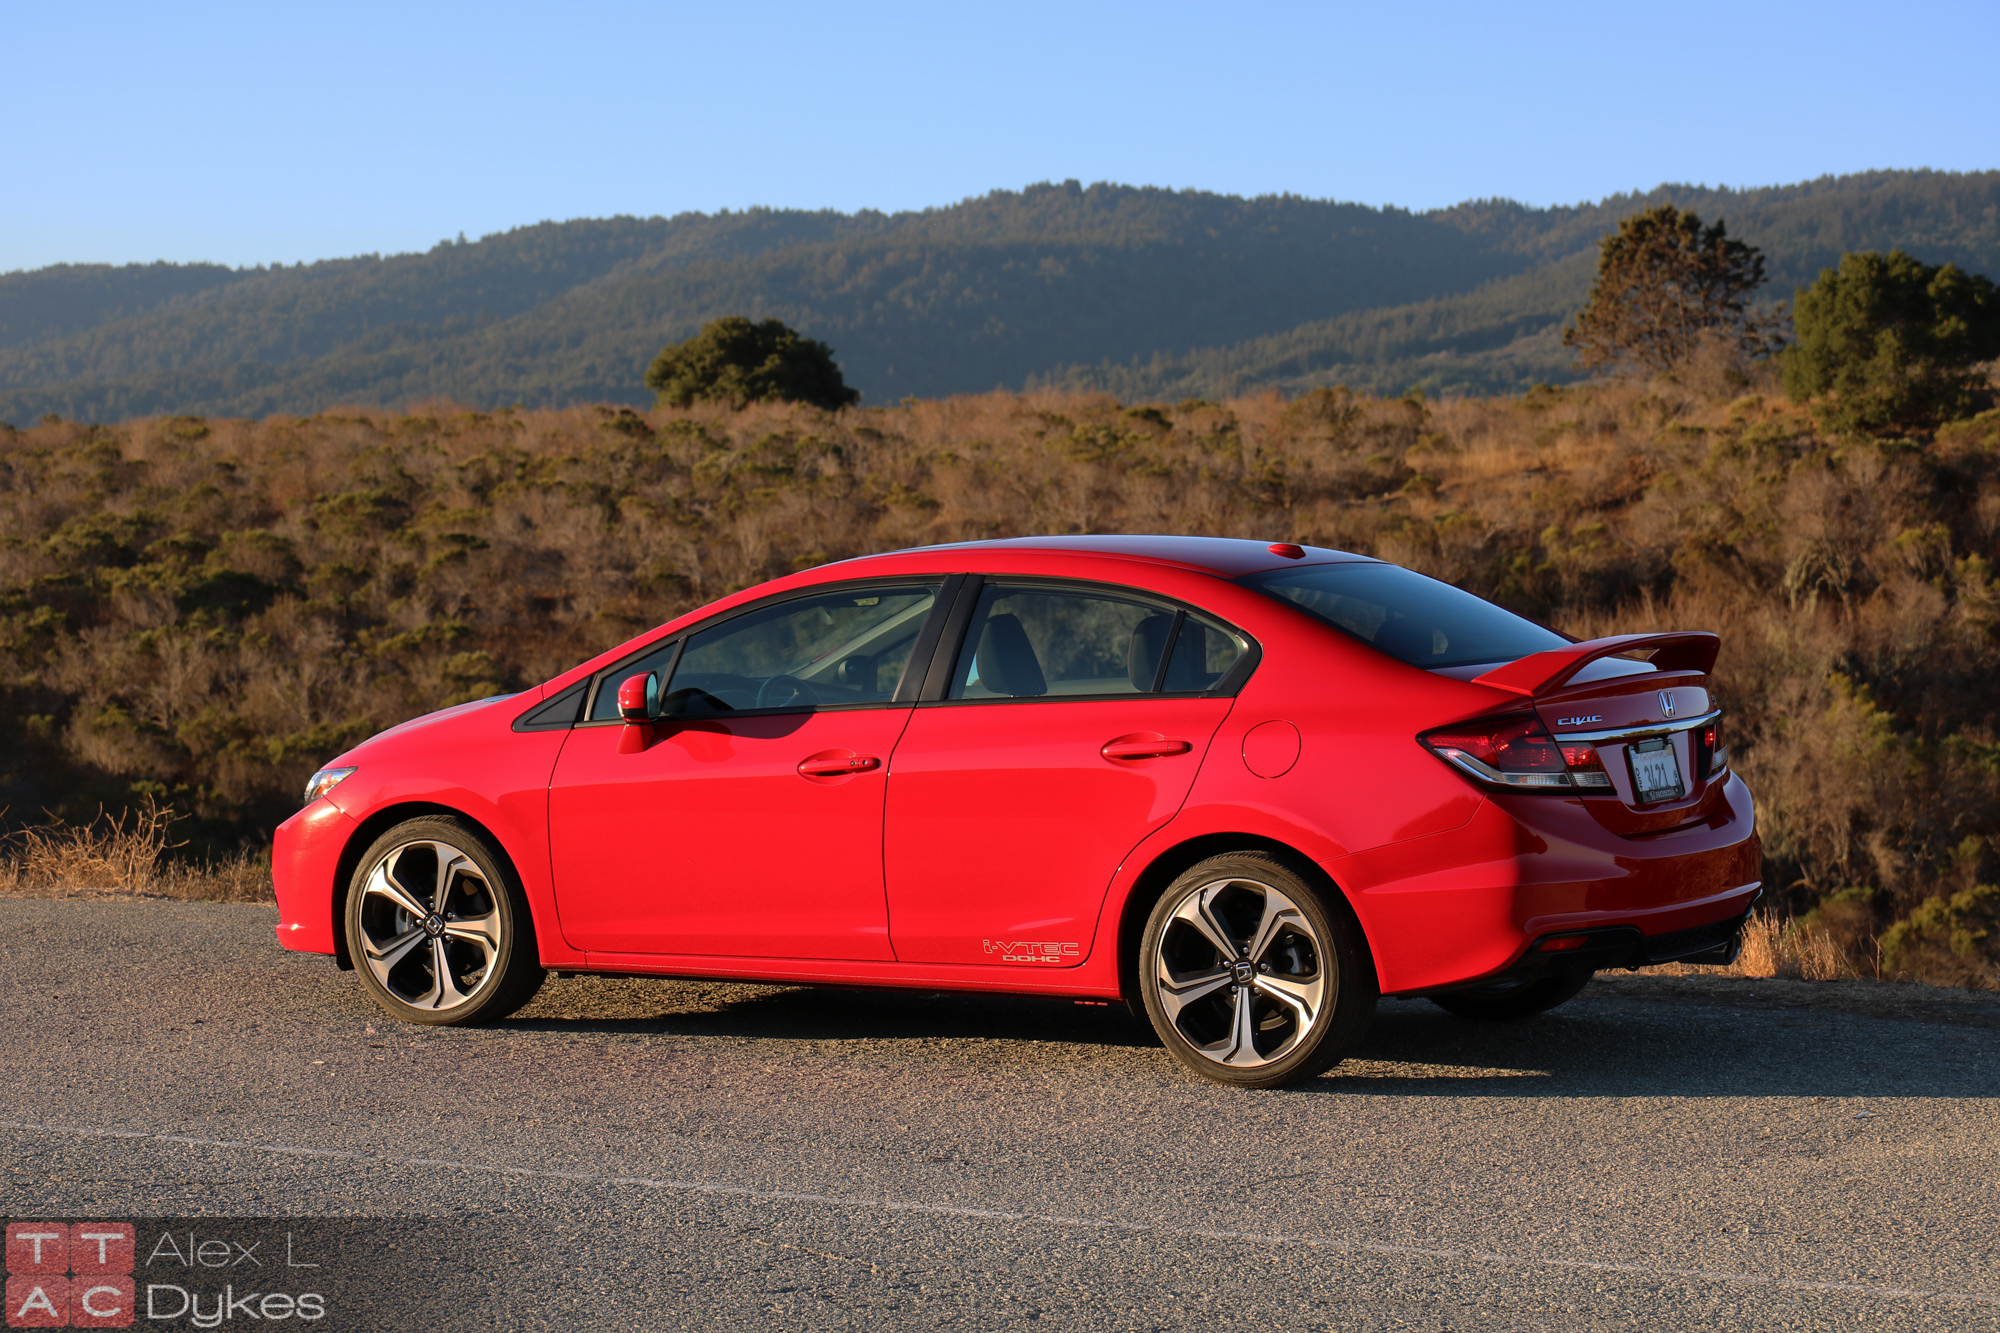 2019 Honda Civic Si Sedan photo - 2